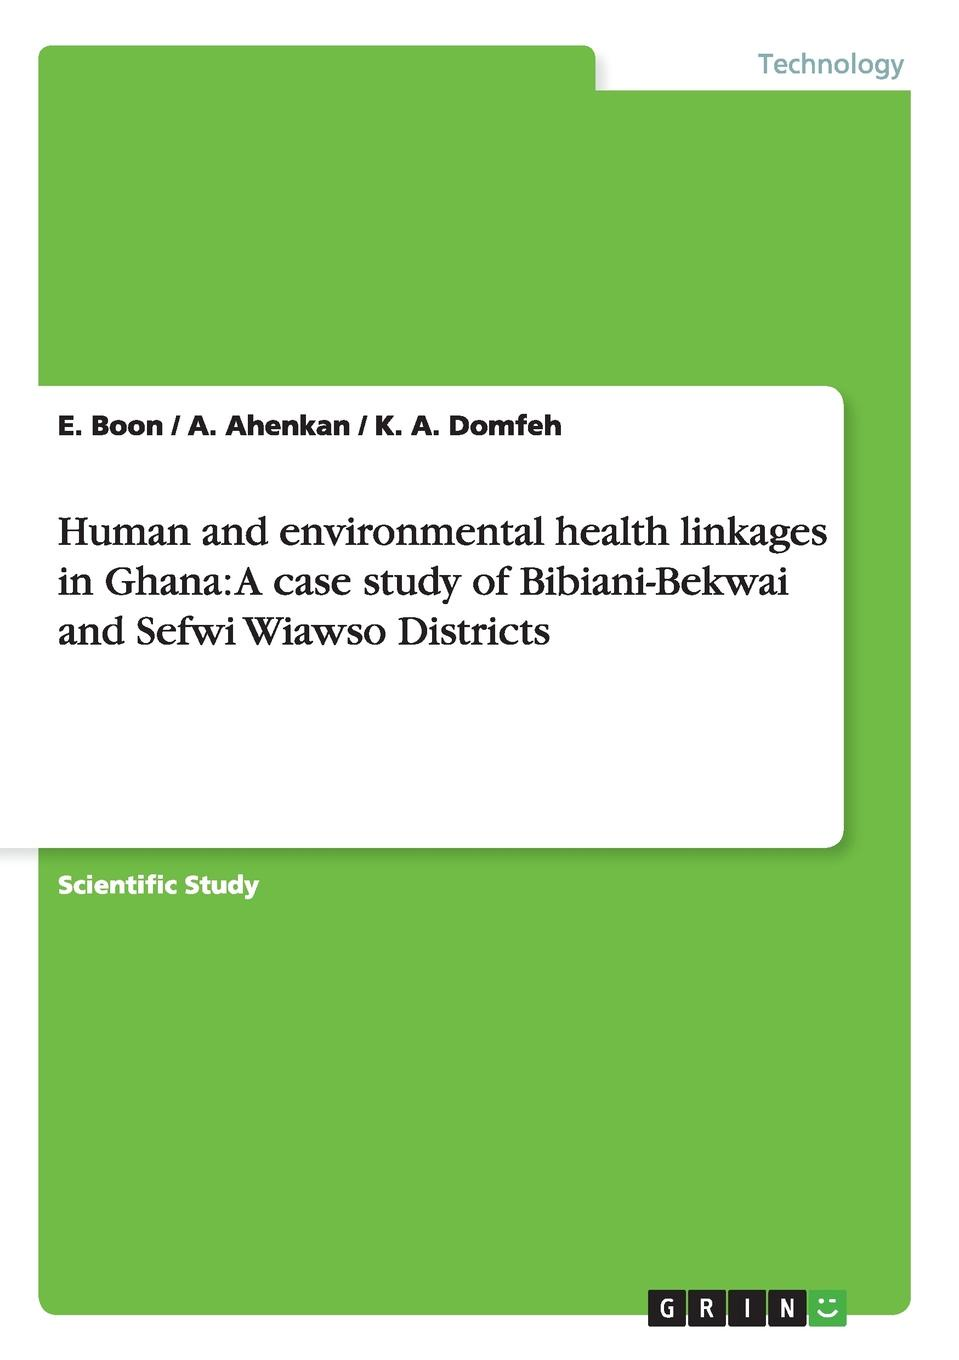 E. Boon, A. Ahenkan, K. A. Domfeh Human and environmental health linkages in Ghana. A case study of Bibiani-Bekwai and Sefwi Wiawso Districts imaging of the human brain in health and disease